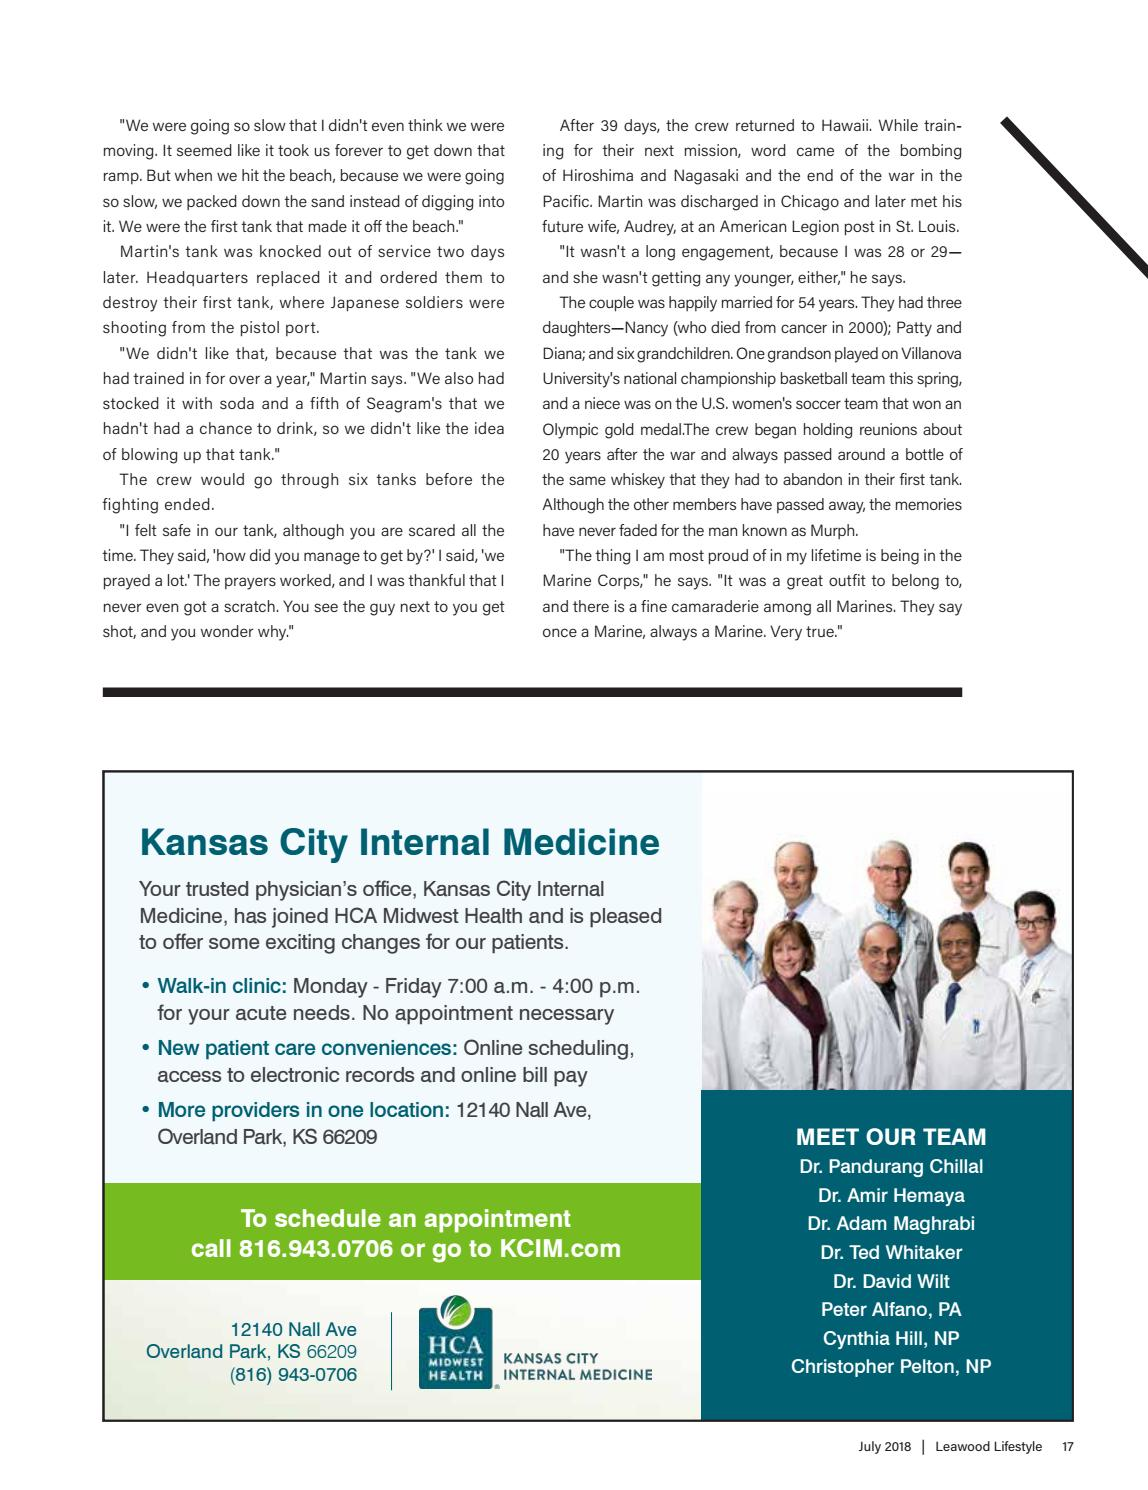 Kansas City Internal Medicine >> Leawood Ks July 2018 By Lifestyle Publications Issuu